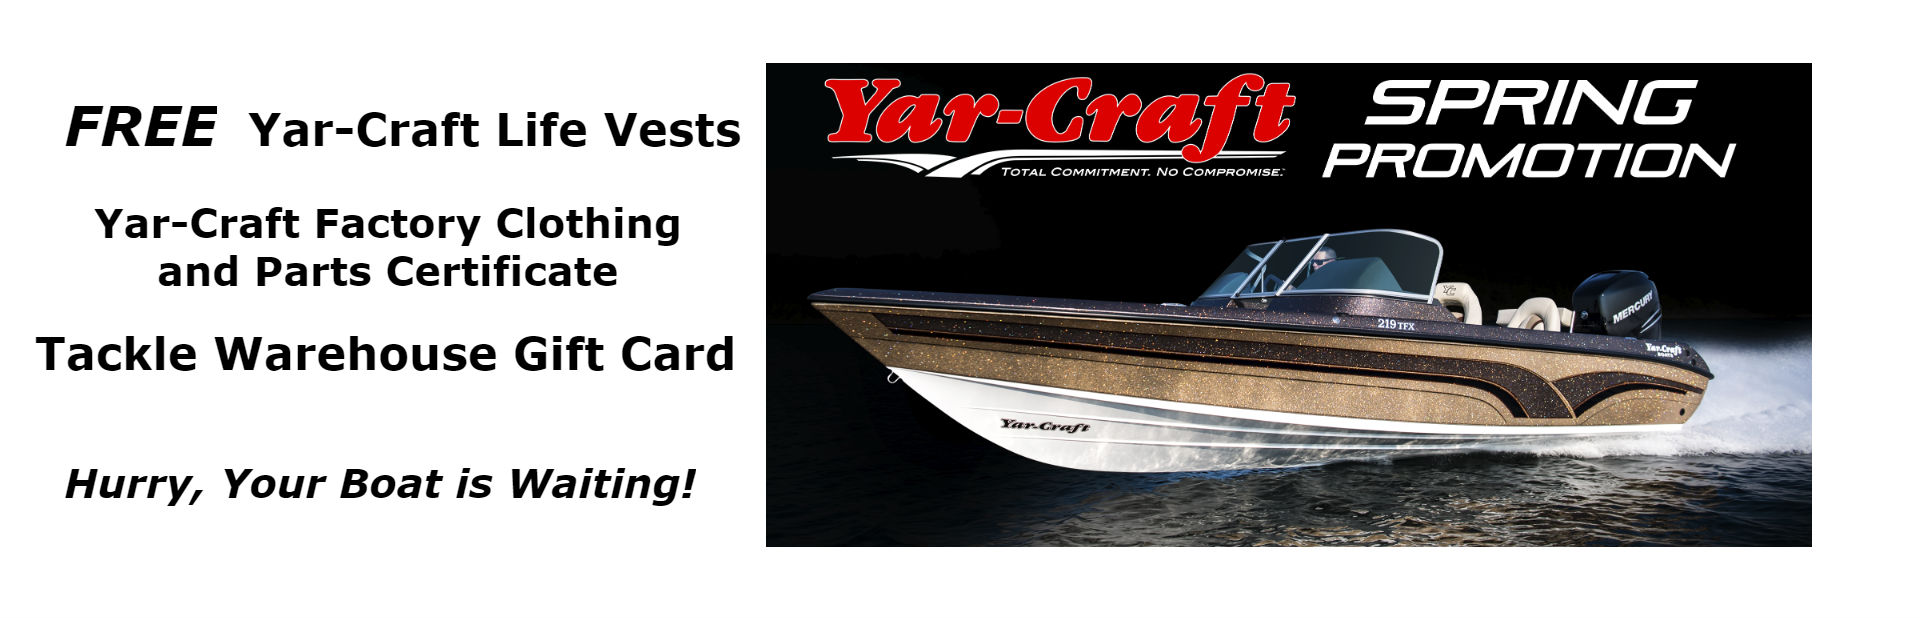 Cedar Lake Sales Yar-Craft Basscat